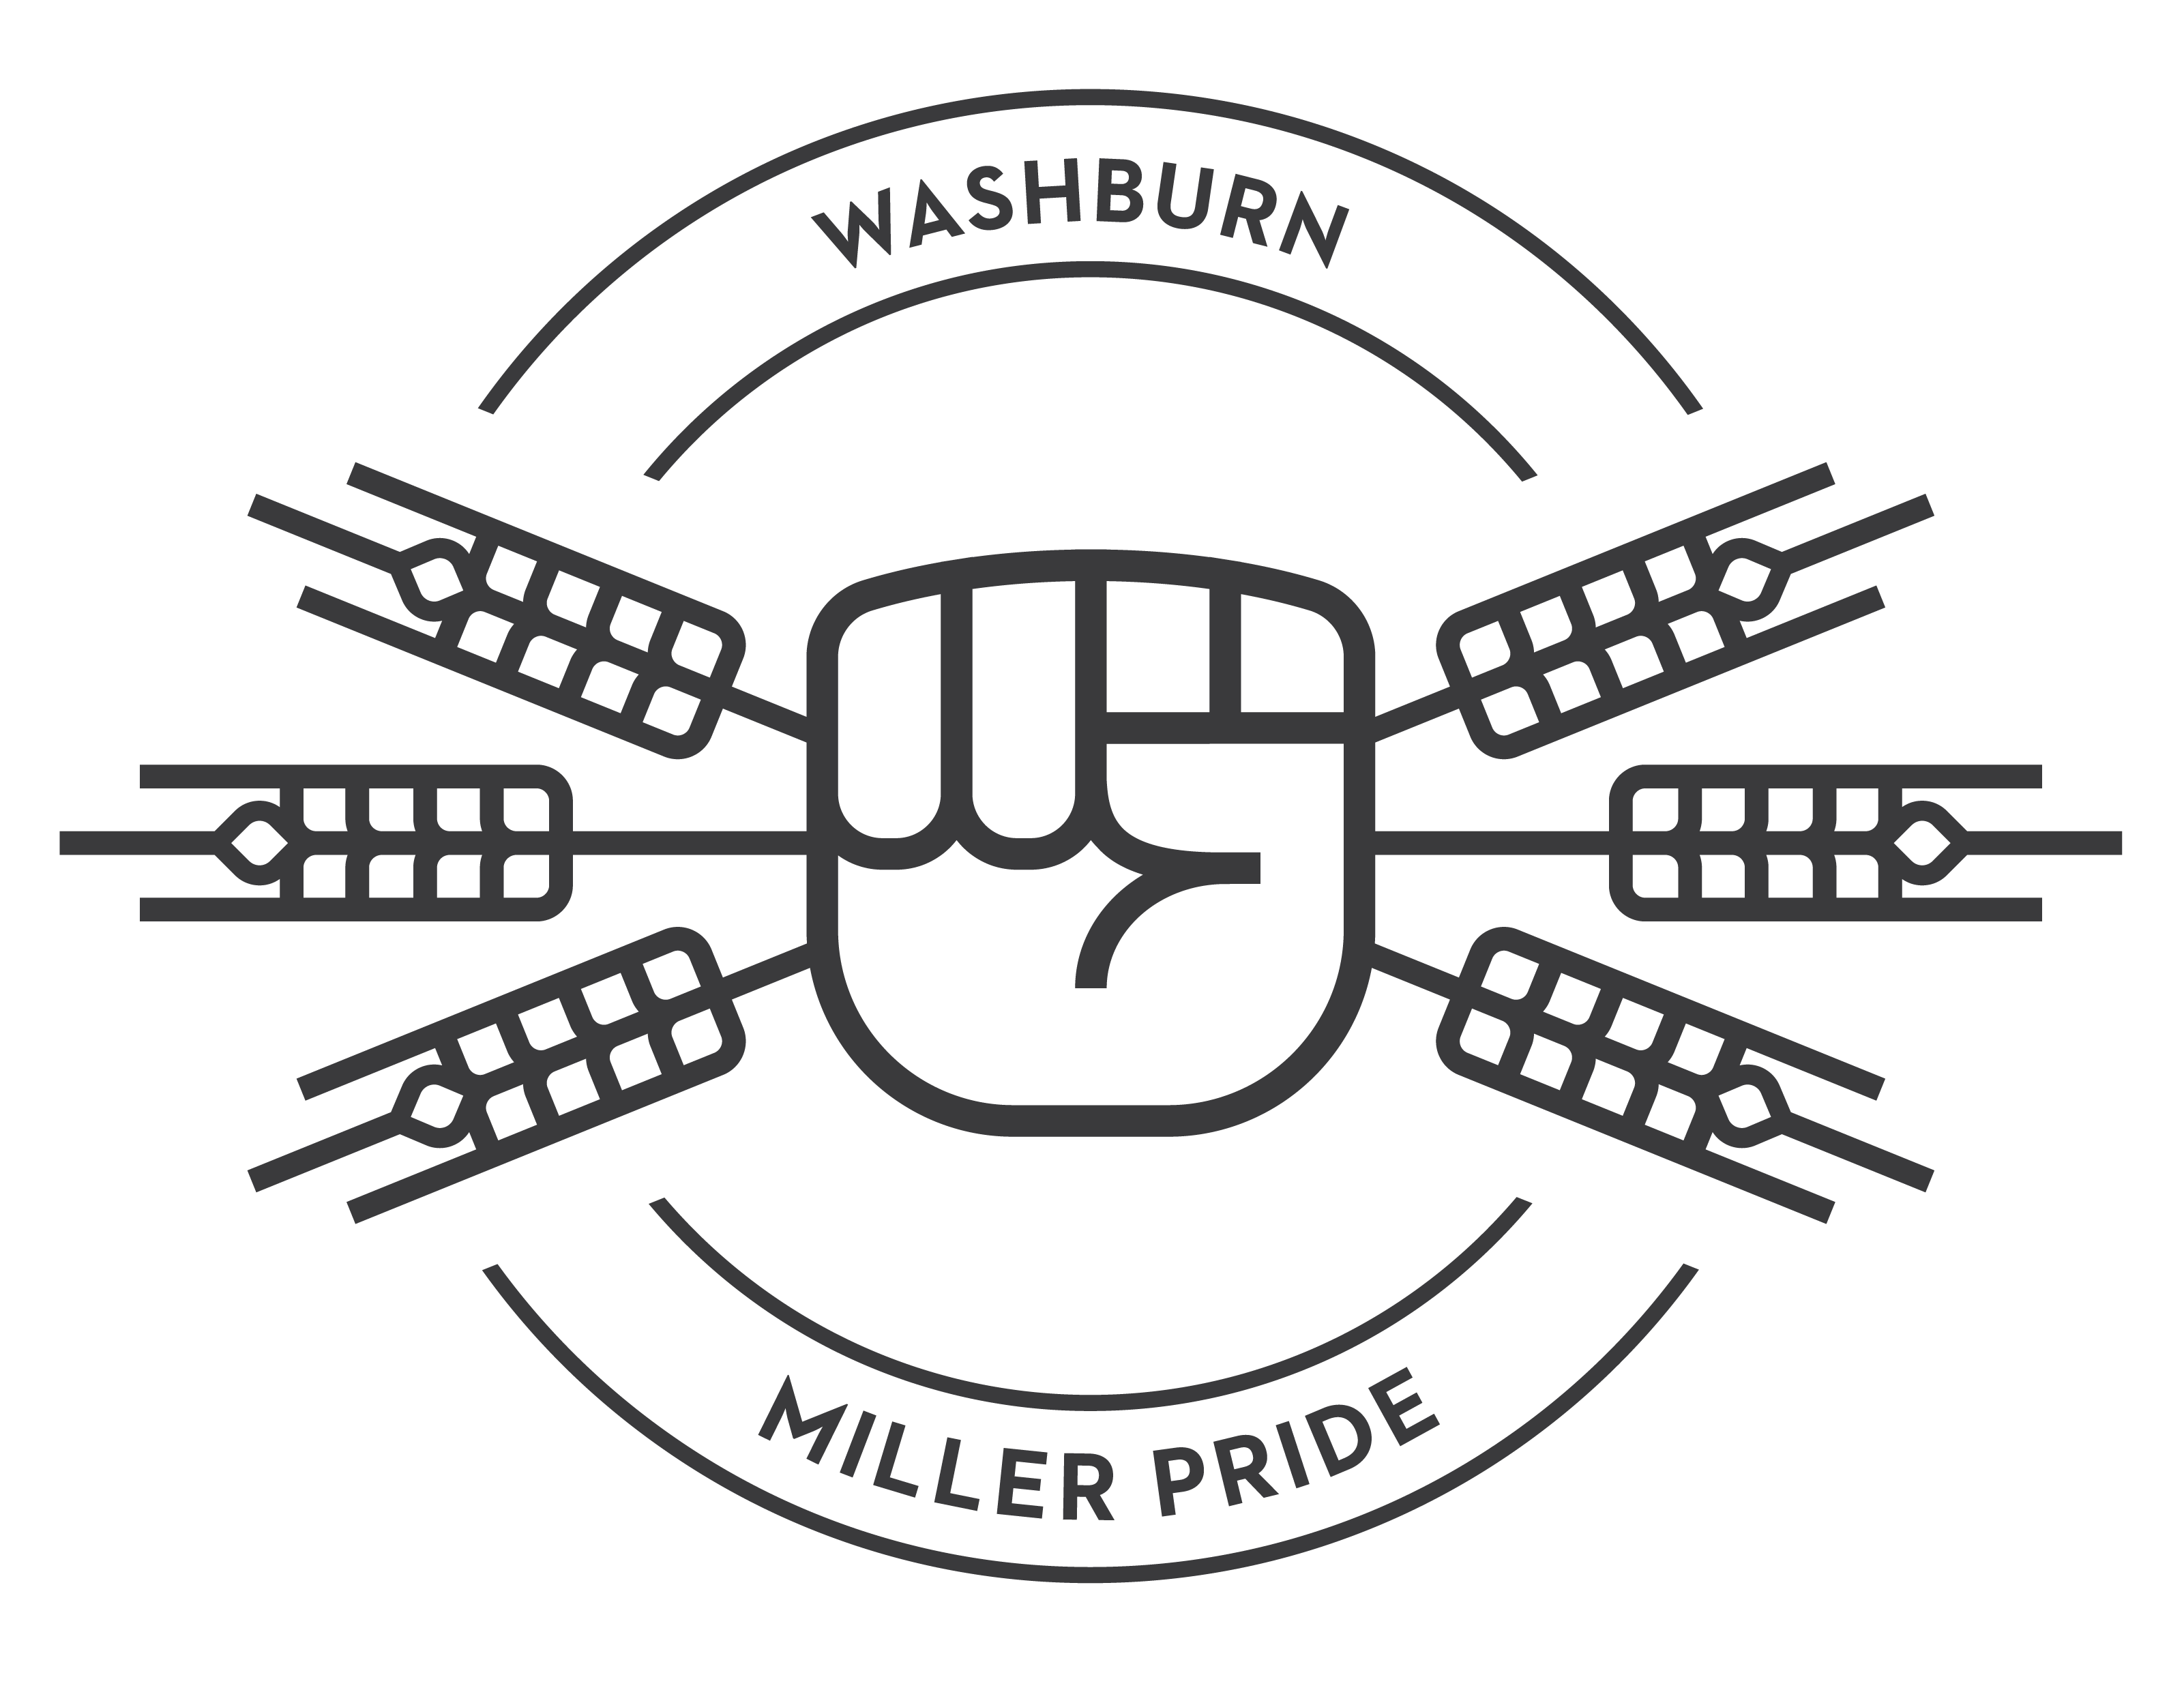 Washburn millers clipart svg black and white Washburn Logos svg black and white